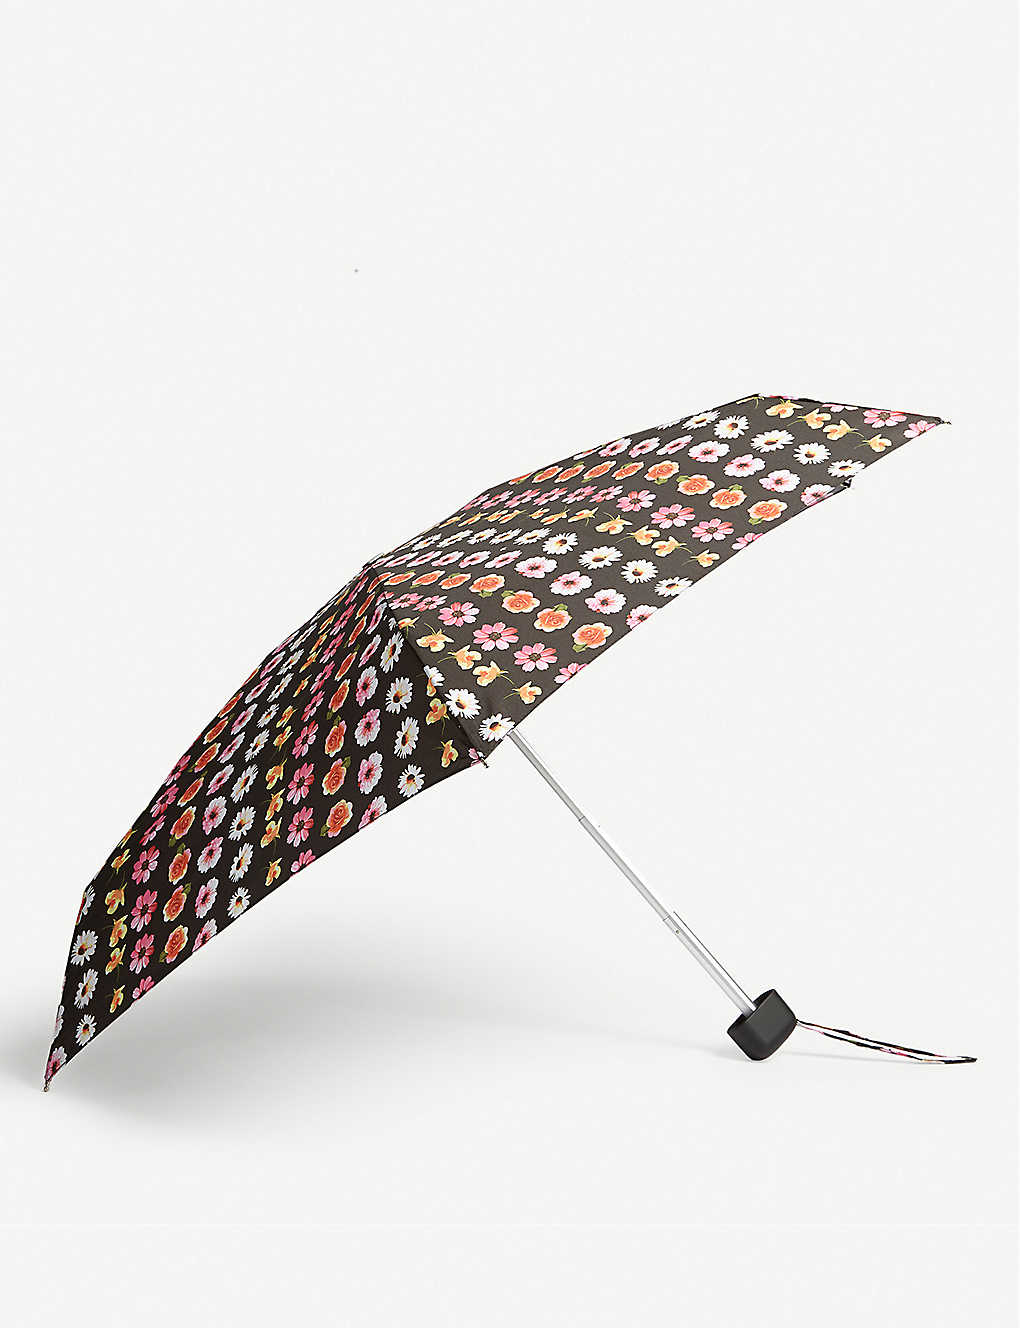 FULTON: Tiny 2 patterned mini compact umbrella